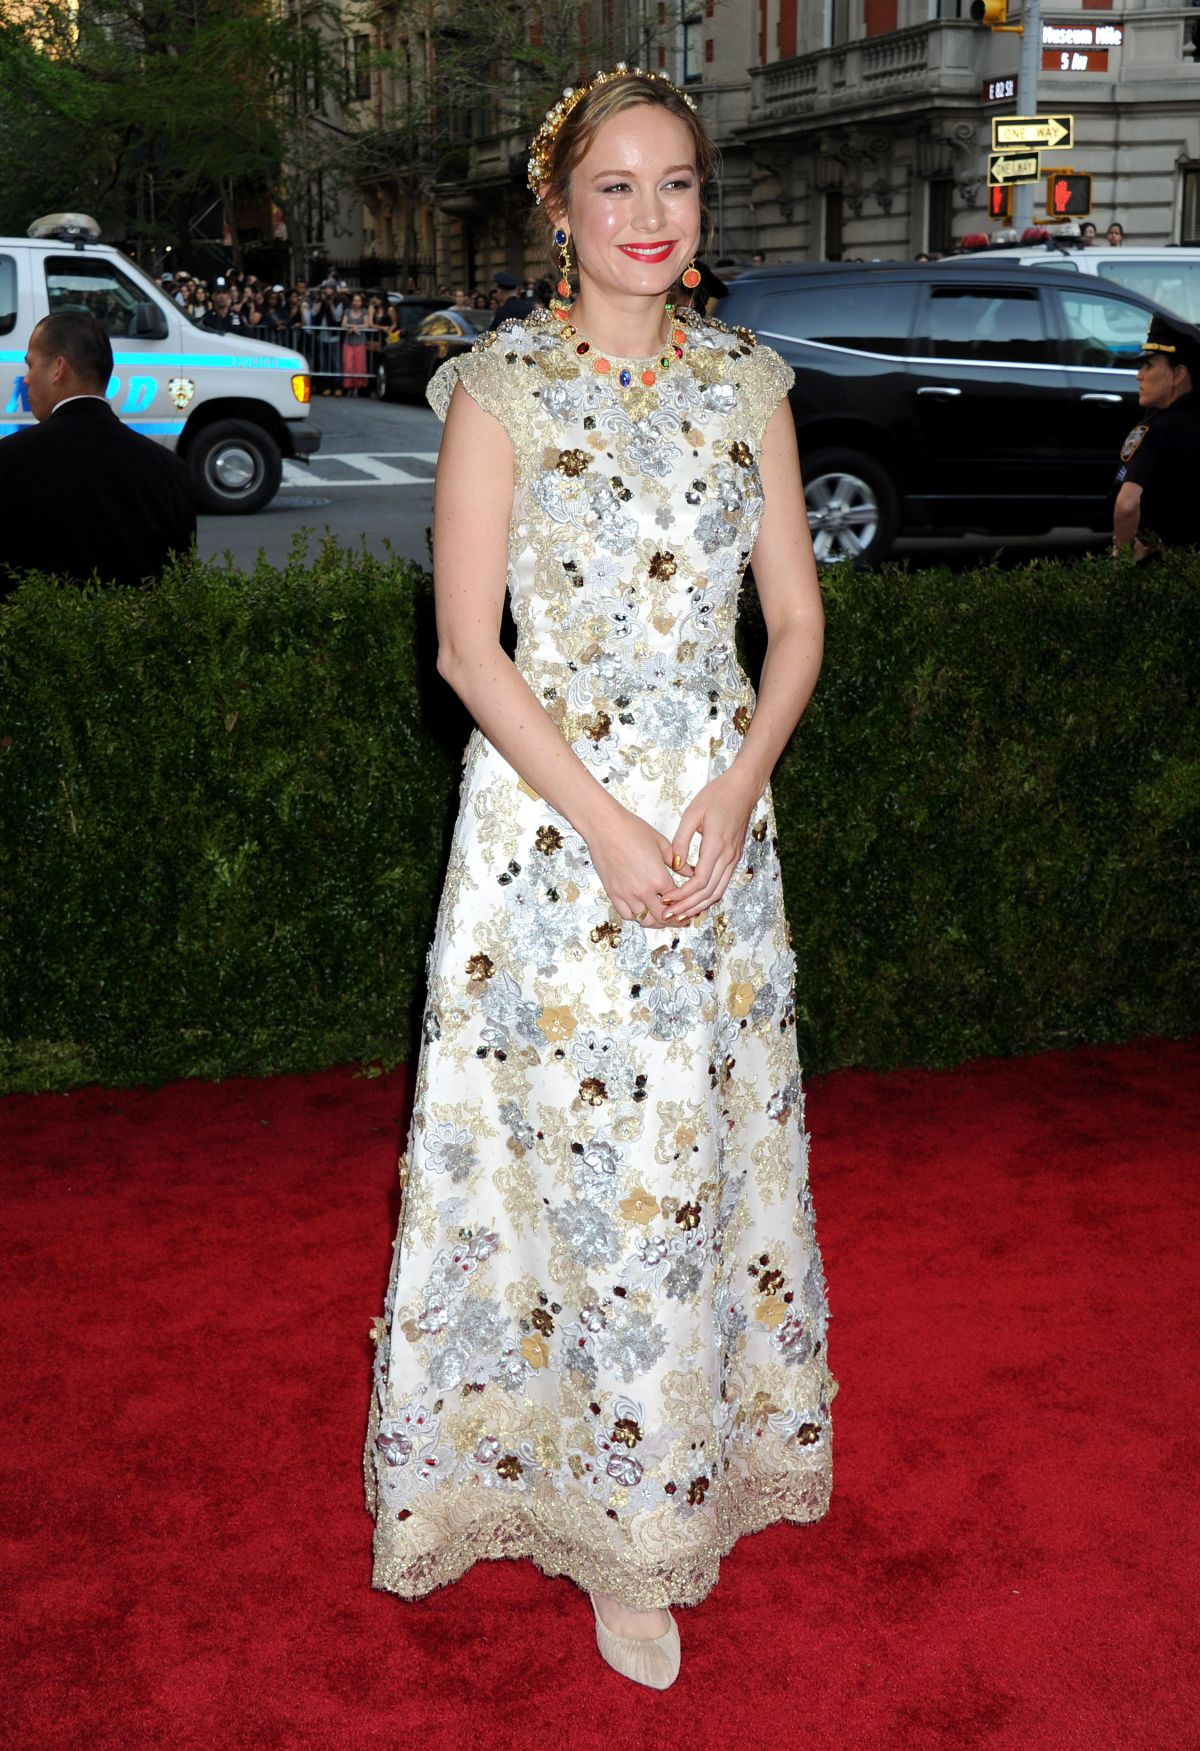 BRIE LARSON at MET Gala 2015 in New York